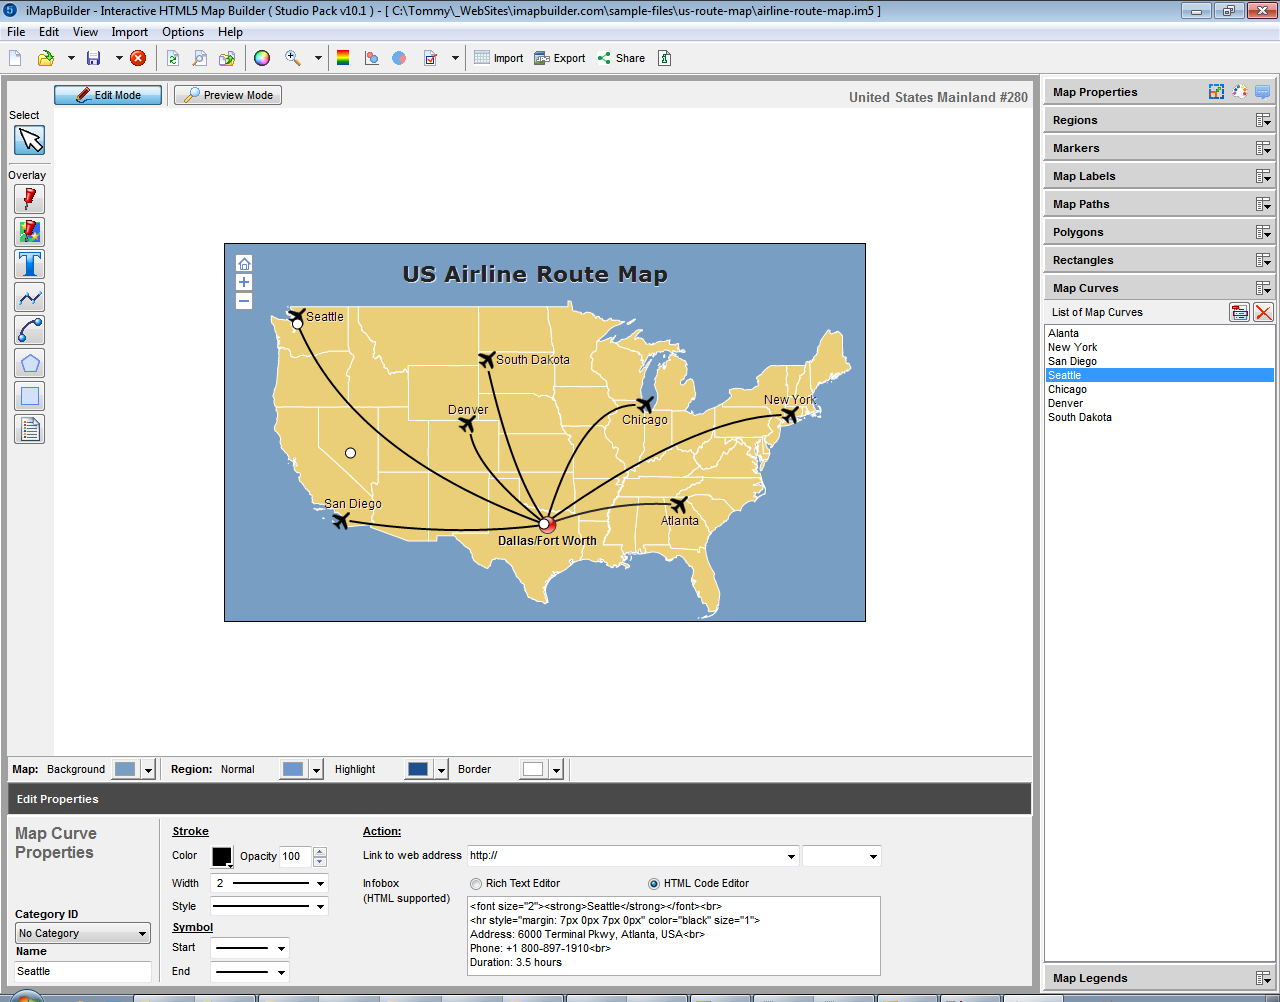 iMapBuilder Interactive HTML5 Map Builder Screenshot